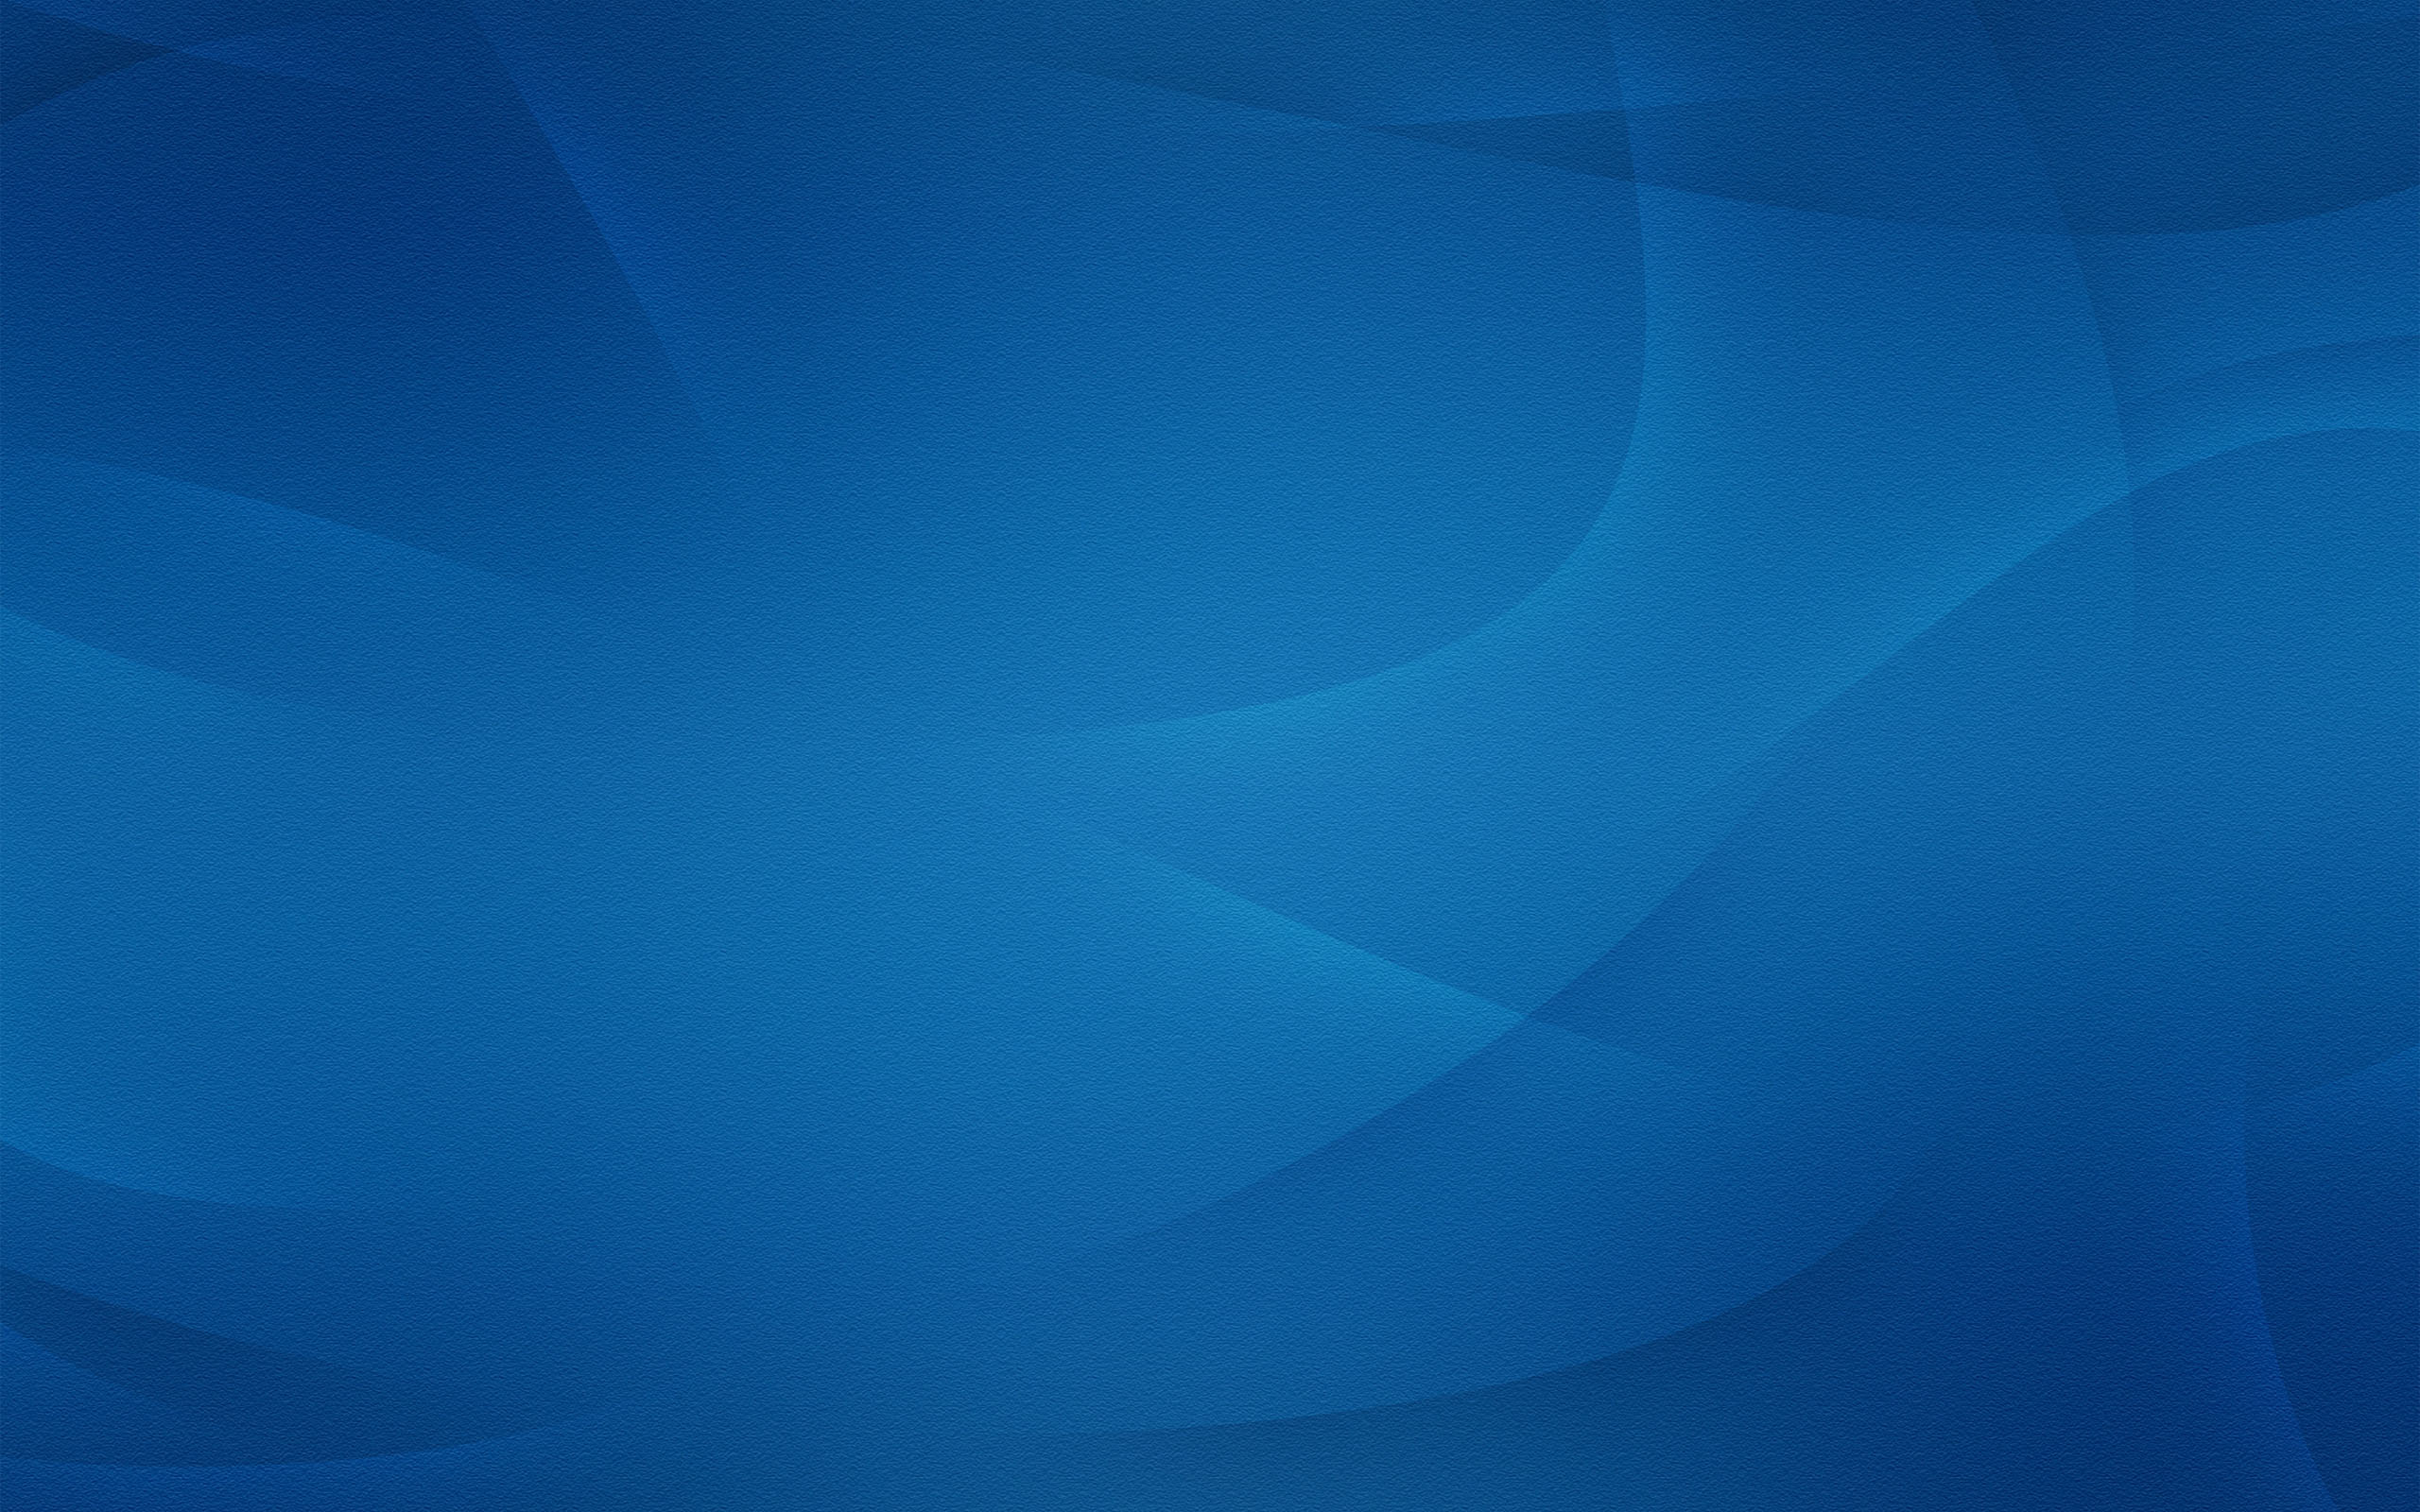 1684736 blue abstract wallpapers Photos 2560x1600